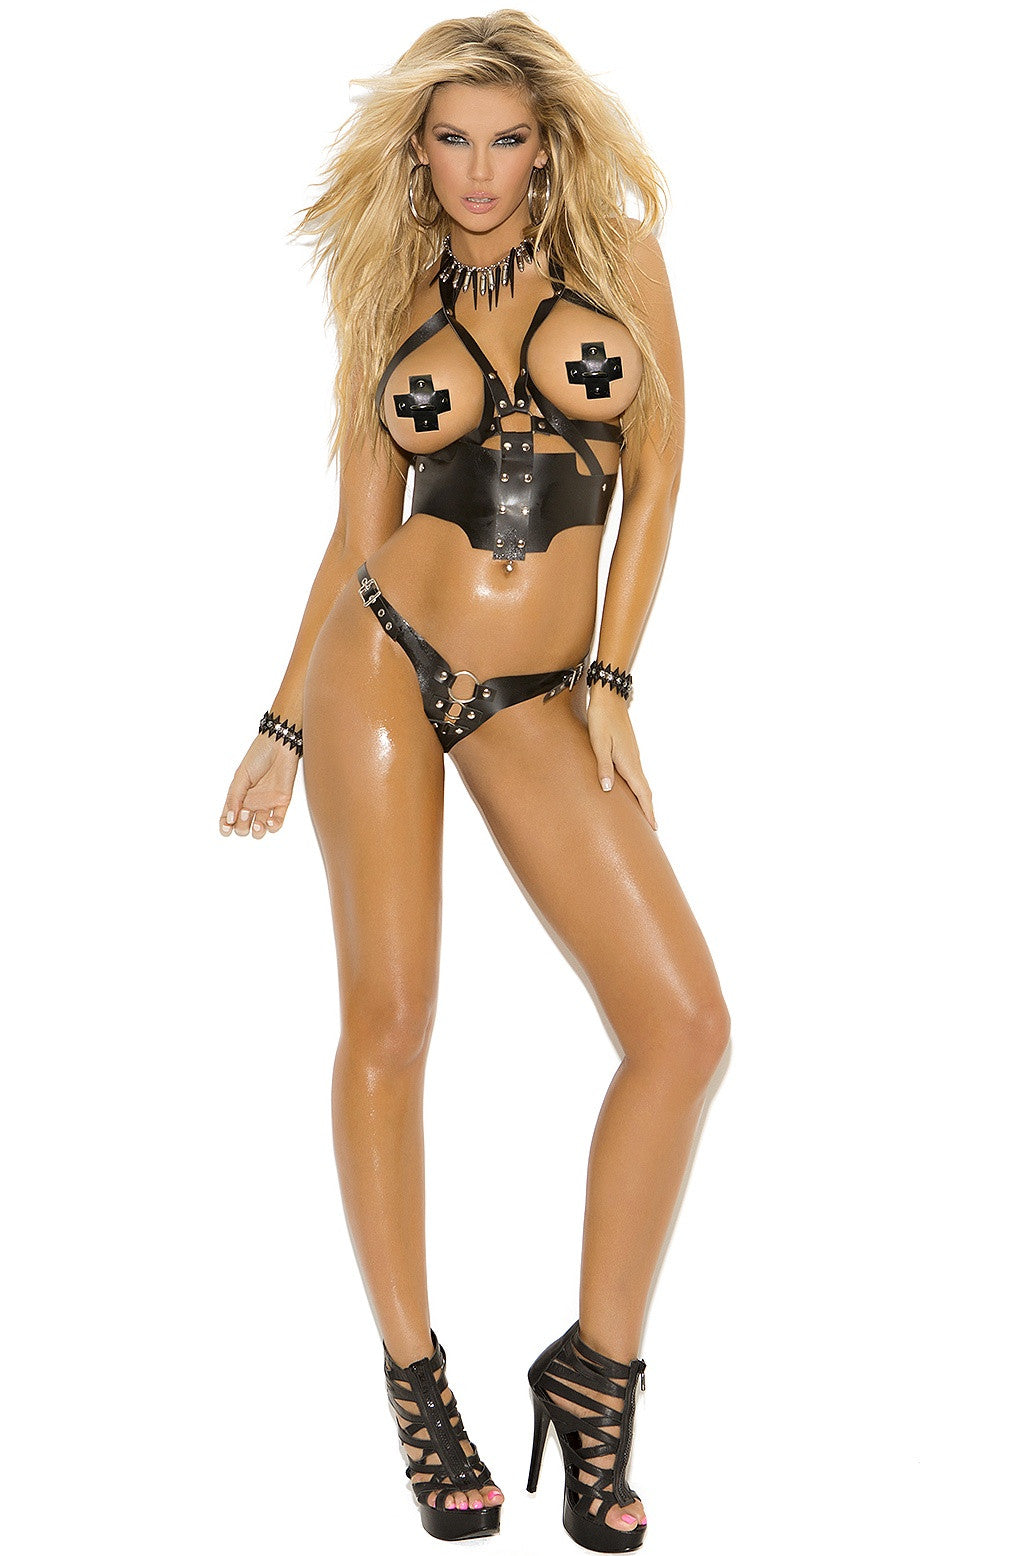 L9701 Black leather harness - Sexylingerieland